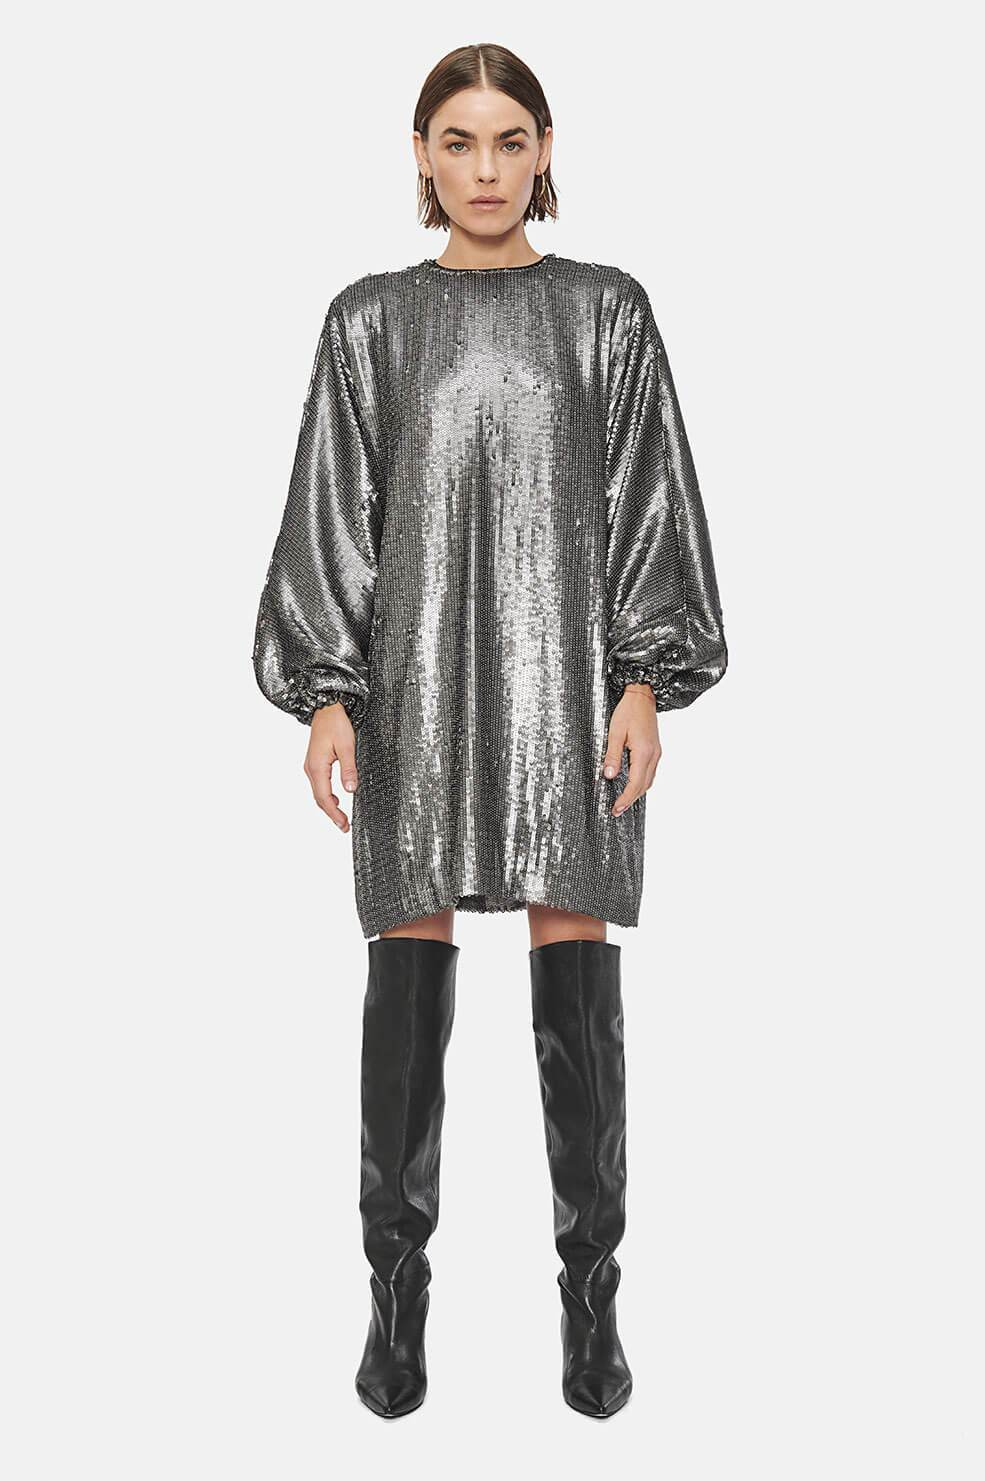 ANINE BING Angie Dress - Sequins